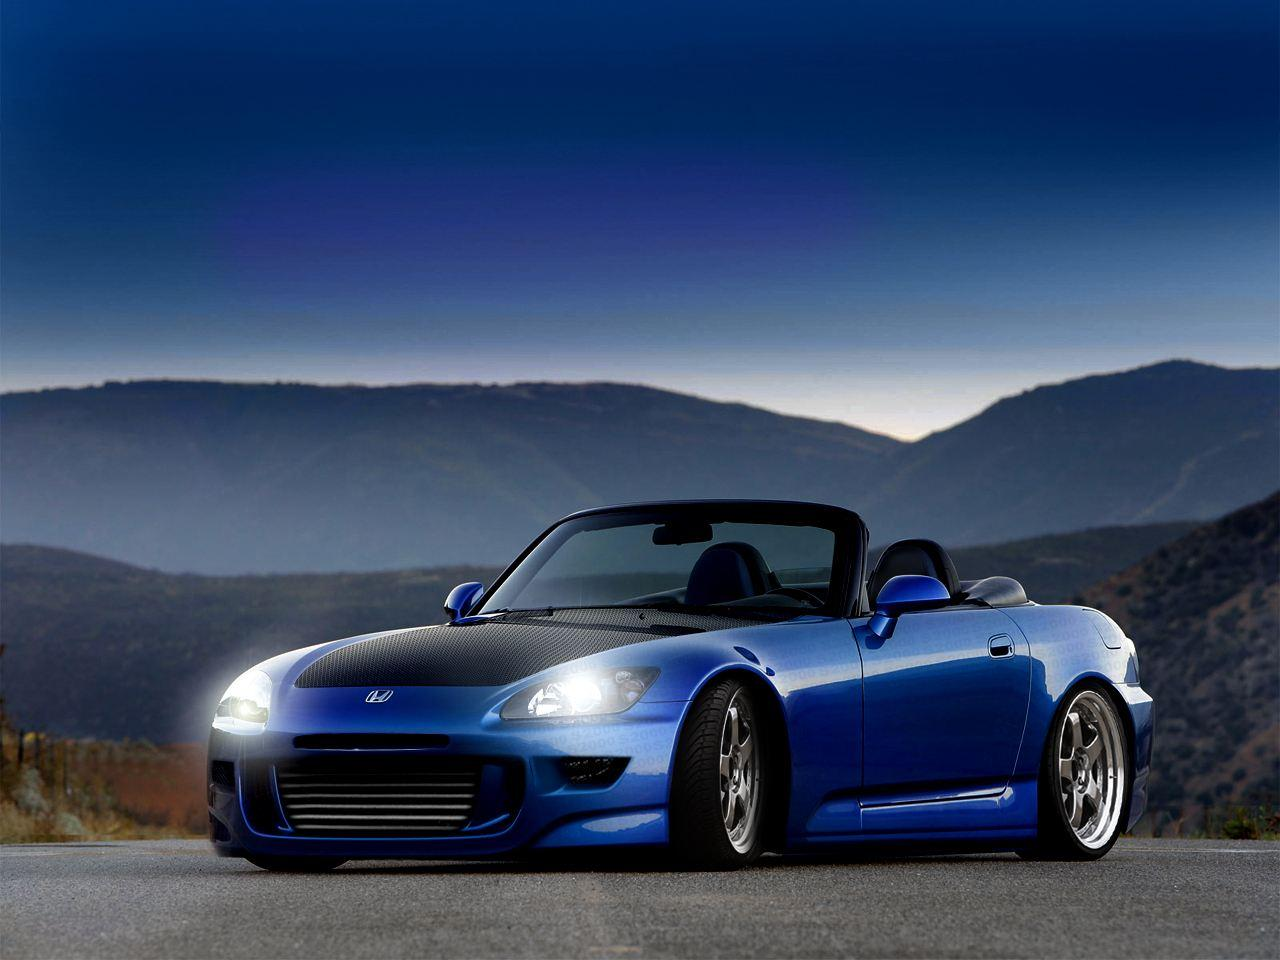 honda s2000 wallpapers wallpaper cave. Black Bedroom Furniture Sets. Home Design Ideas